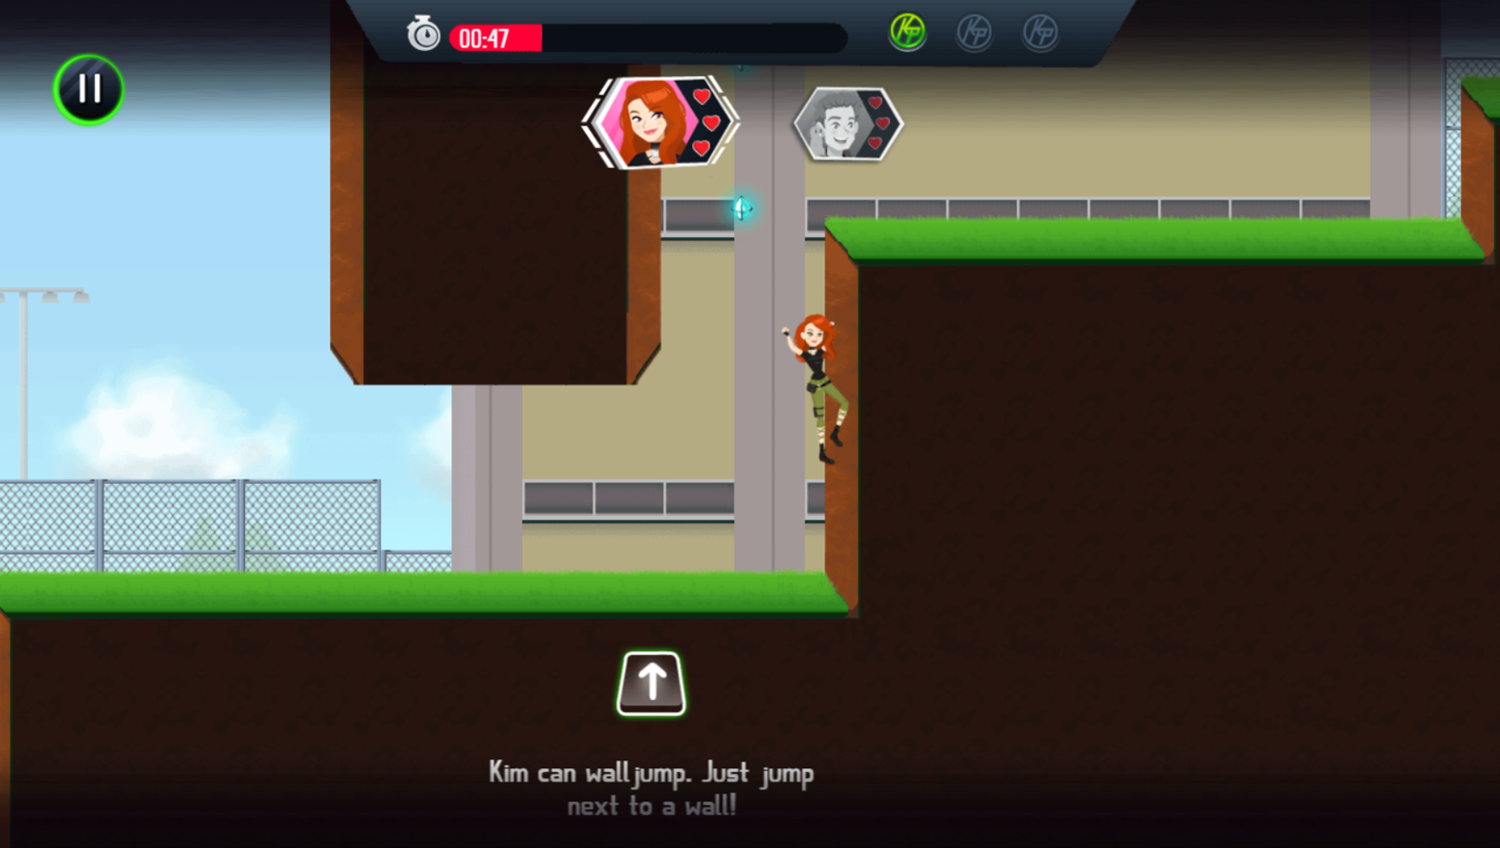 Kim Possible Mission Improbable Game How To Wall Jump Screenshot.